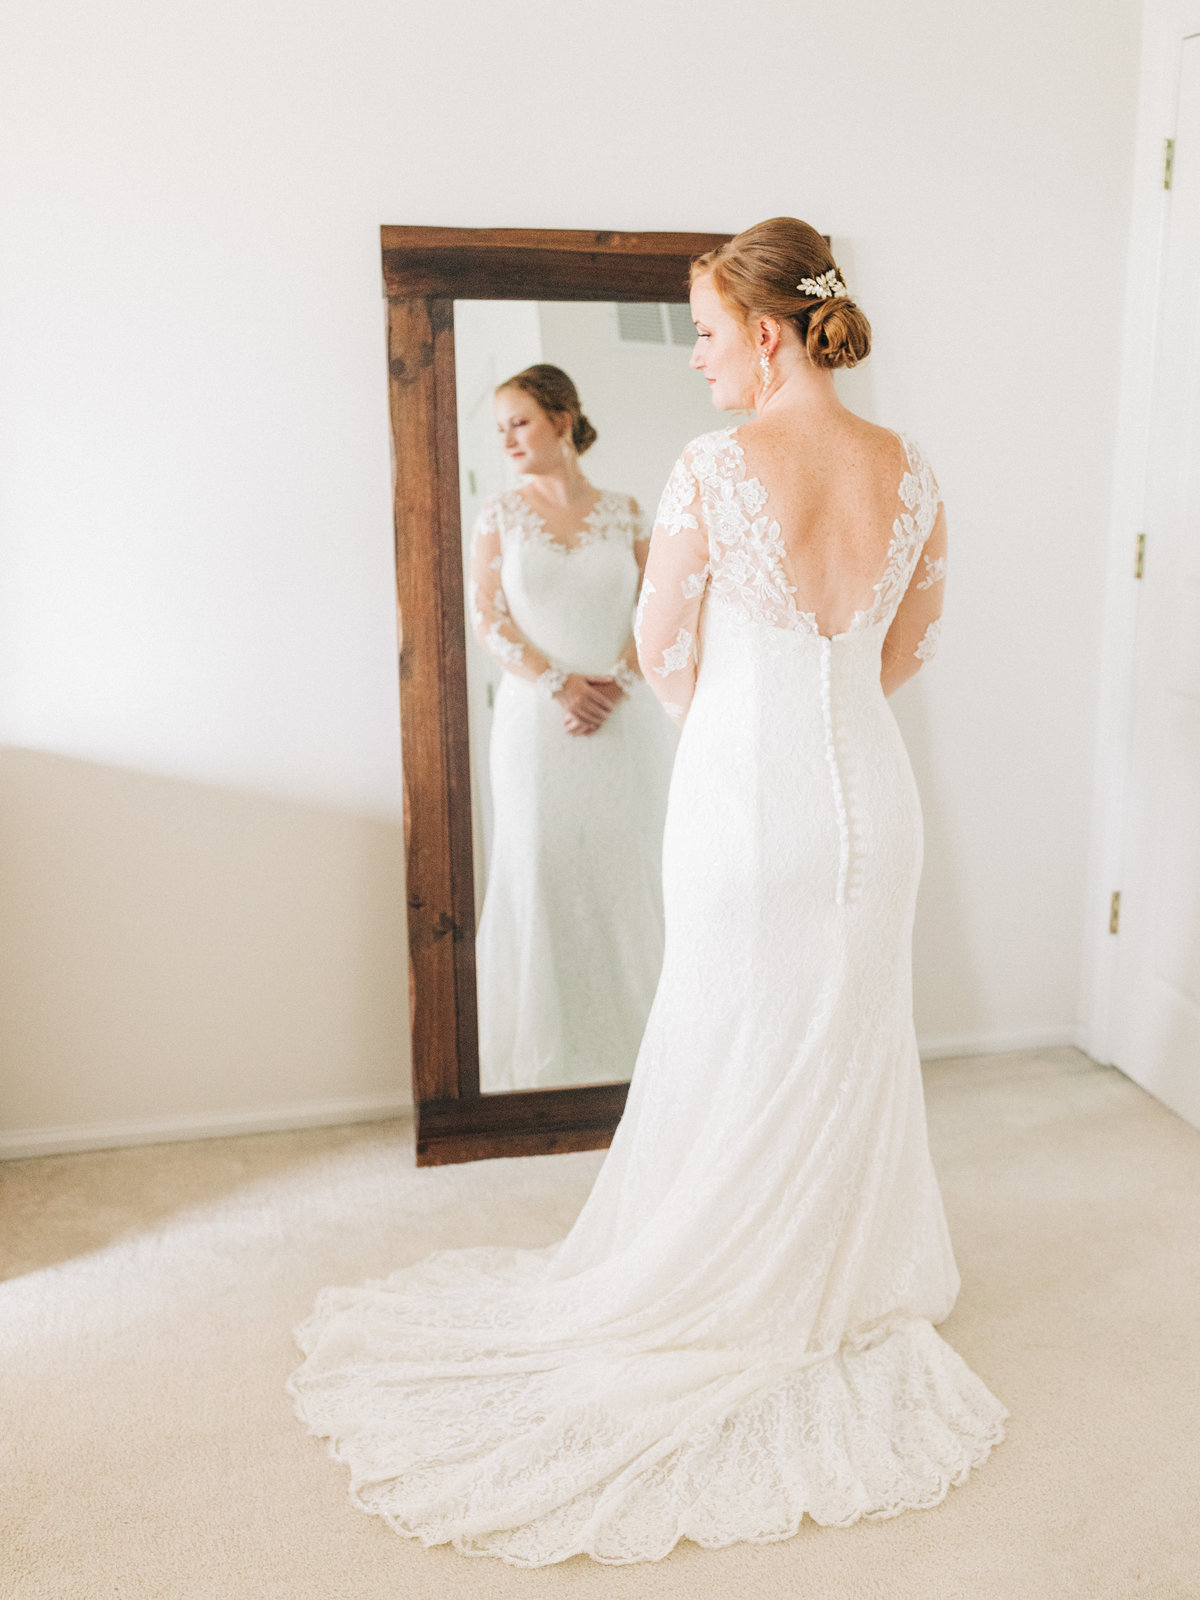 Dorothy_Louise_Photography_Sam_Nick_St_Charles_Le_Belle_Coeur_Wedding_Getting_Ready-66